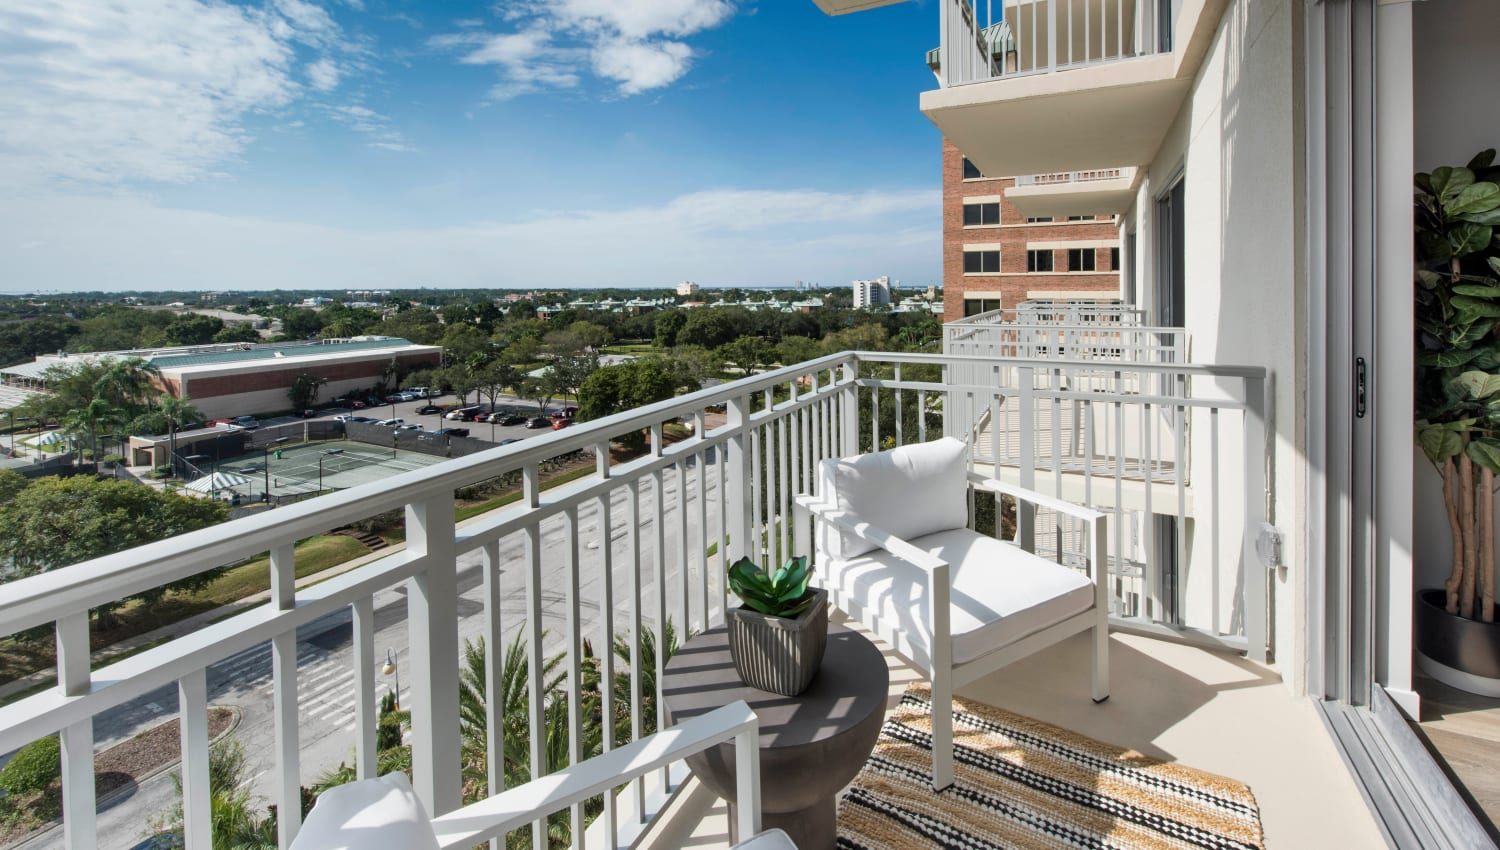 Private balcony with a terrific view outside a model home at Olympus Harbour Island in Tampa, Florida